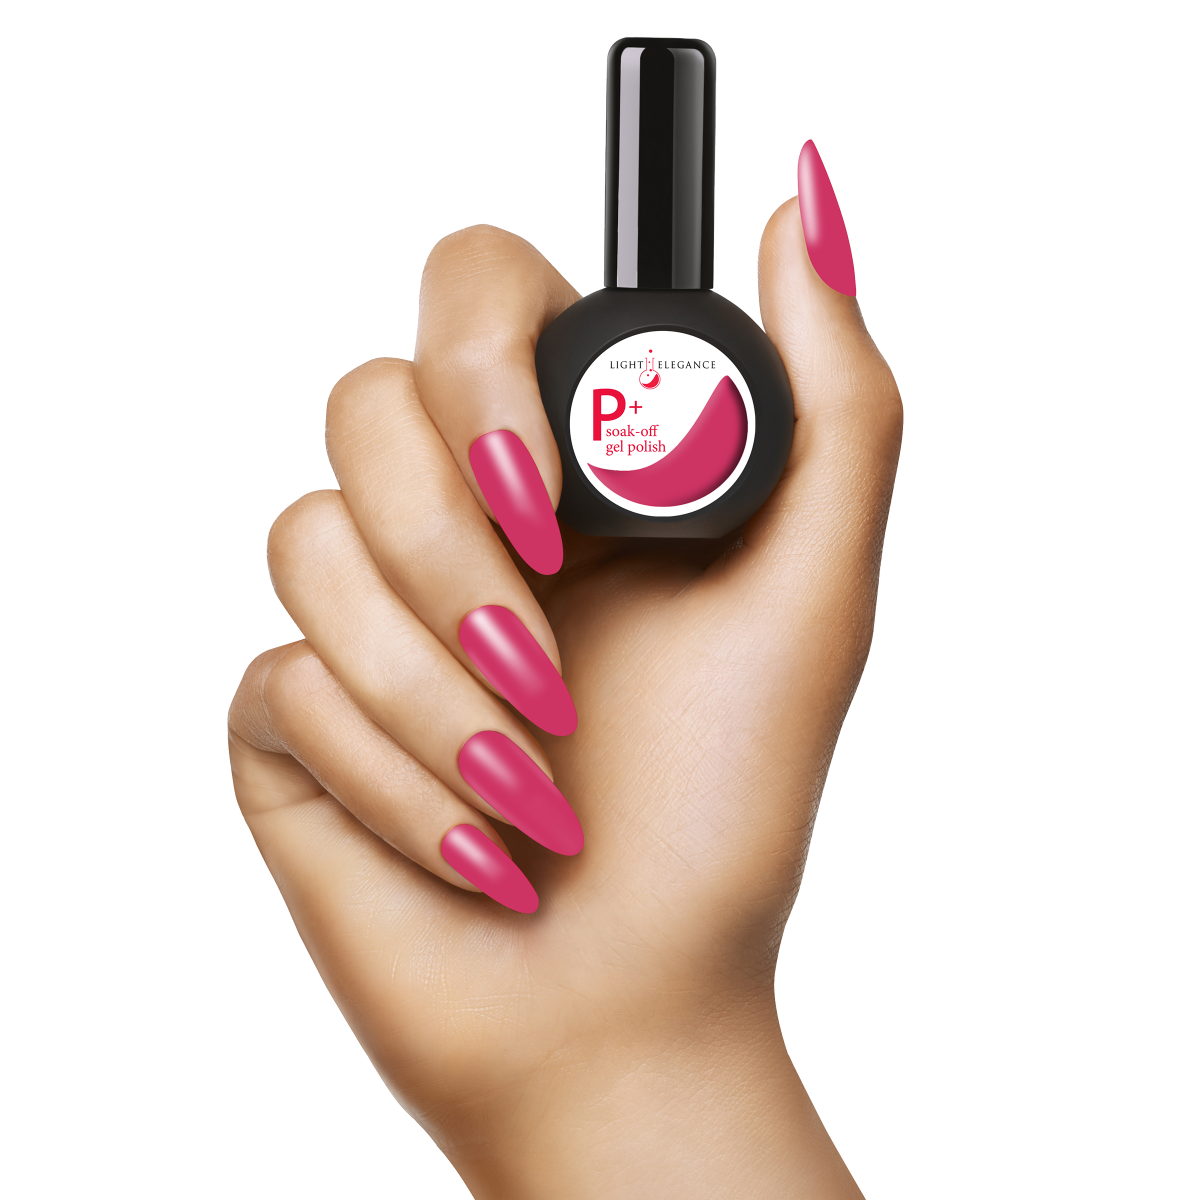 NEW P+ True Love Gel Polish